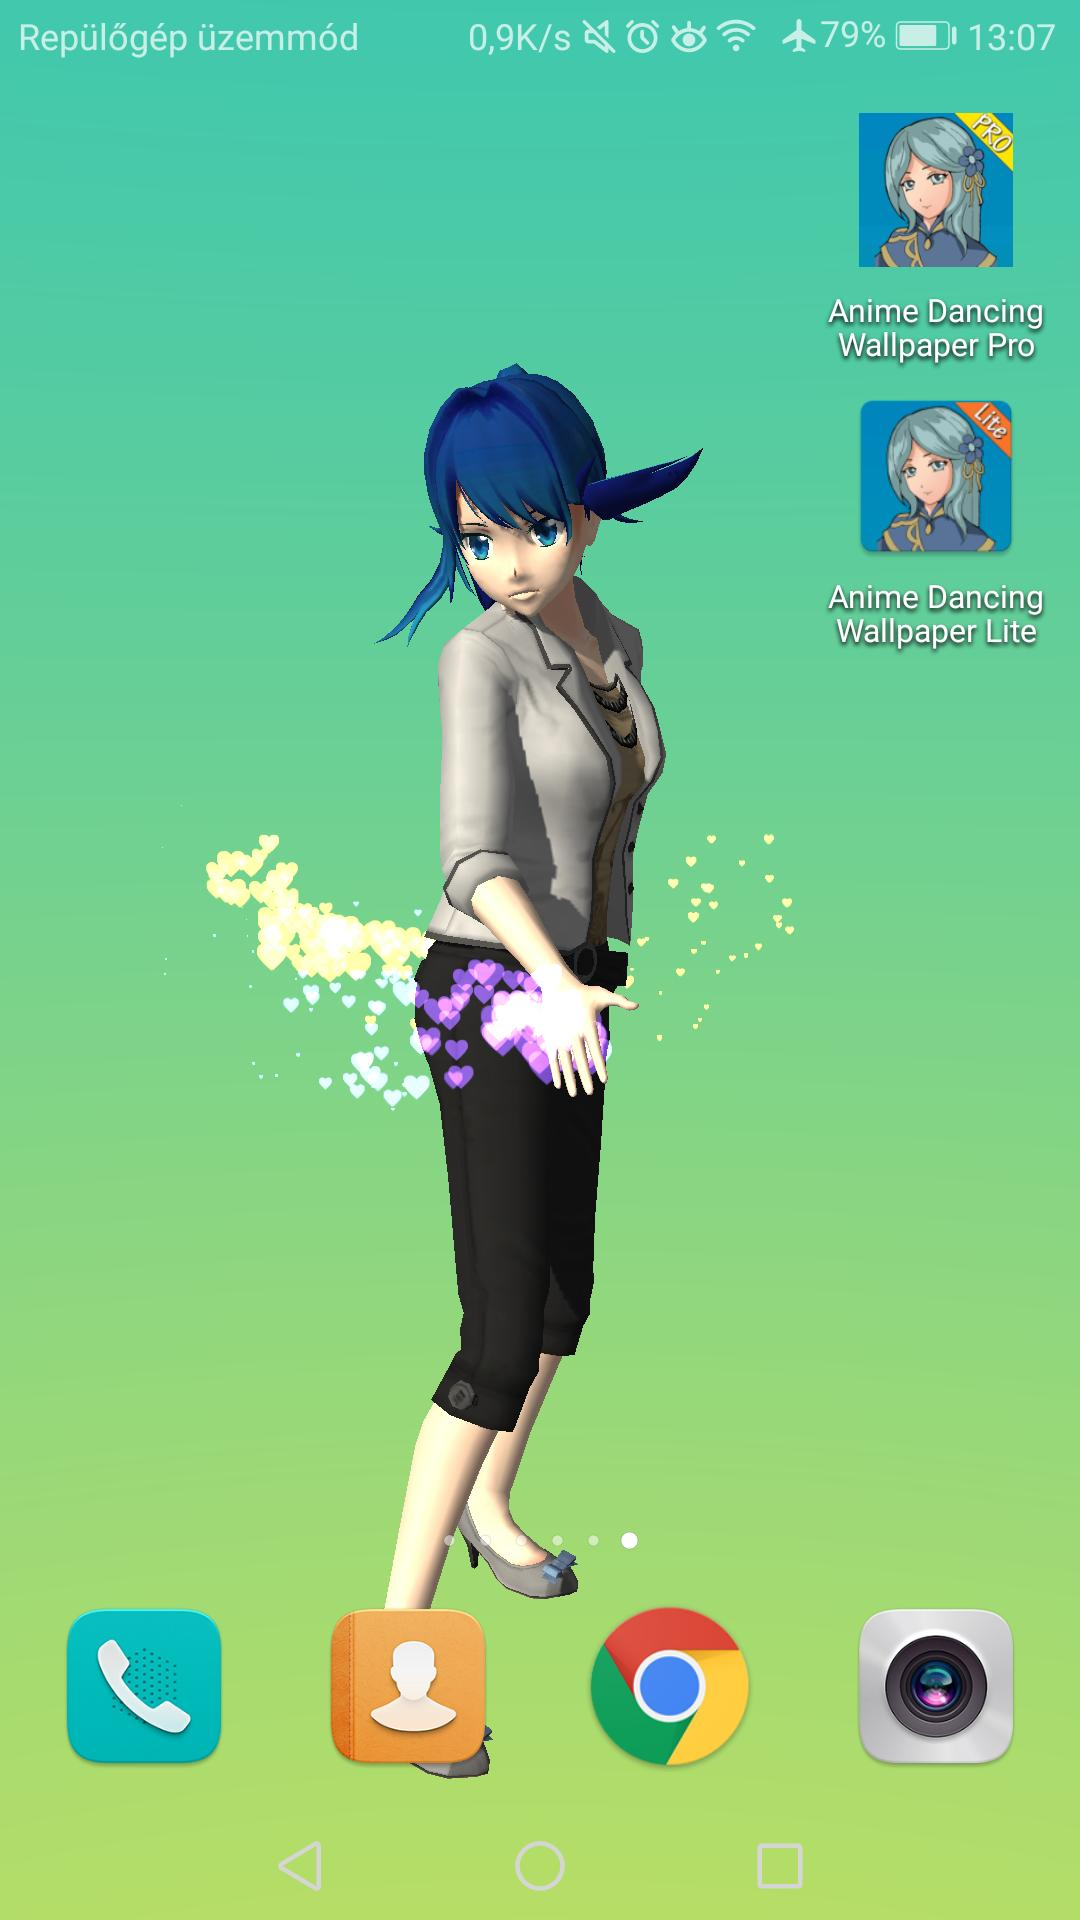 Anime Dancing Live Wallpaper Lite for Android - APK Download